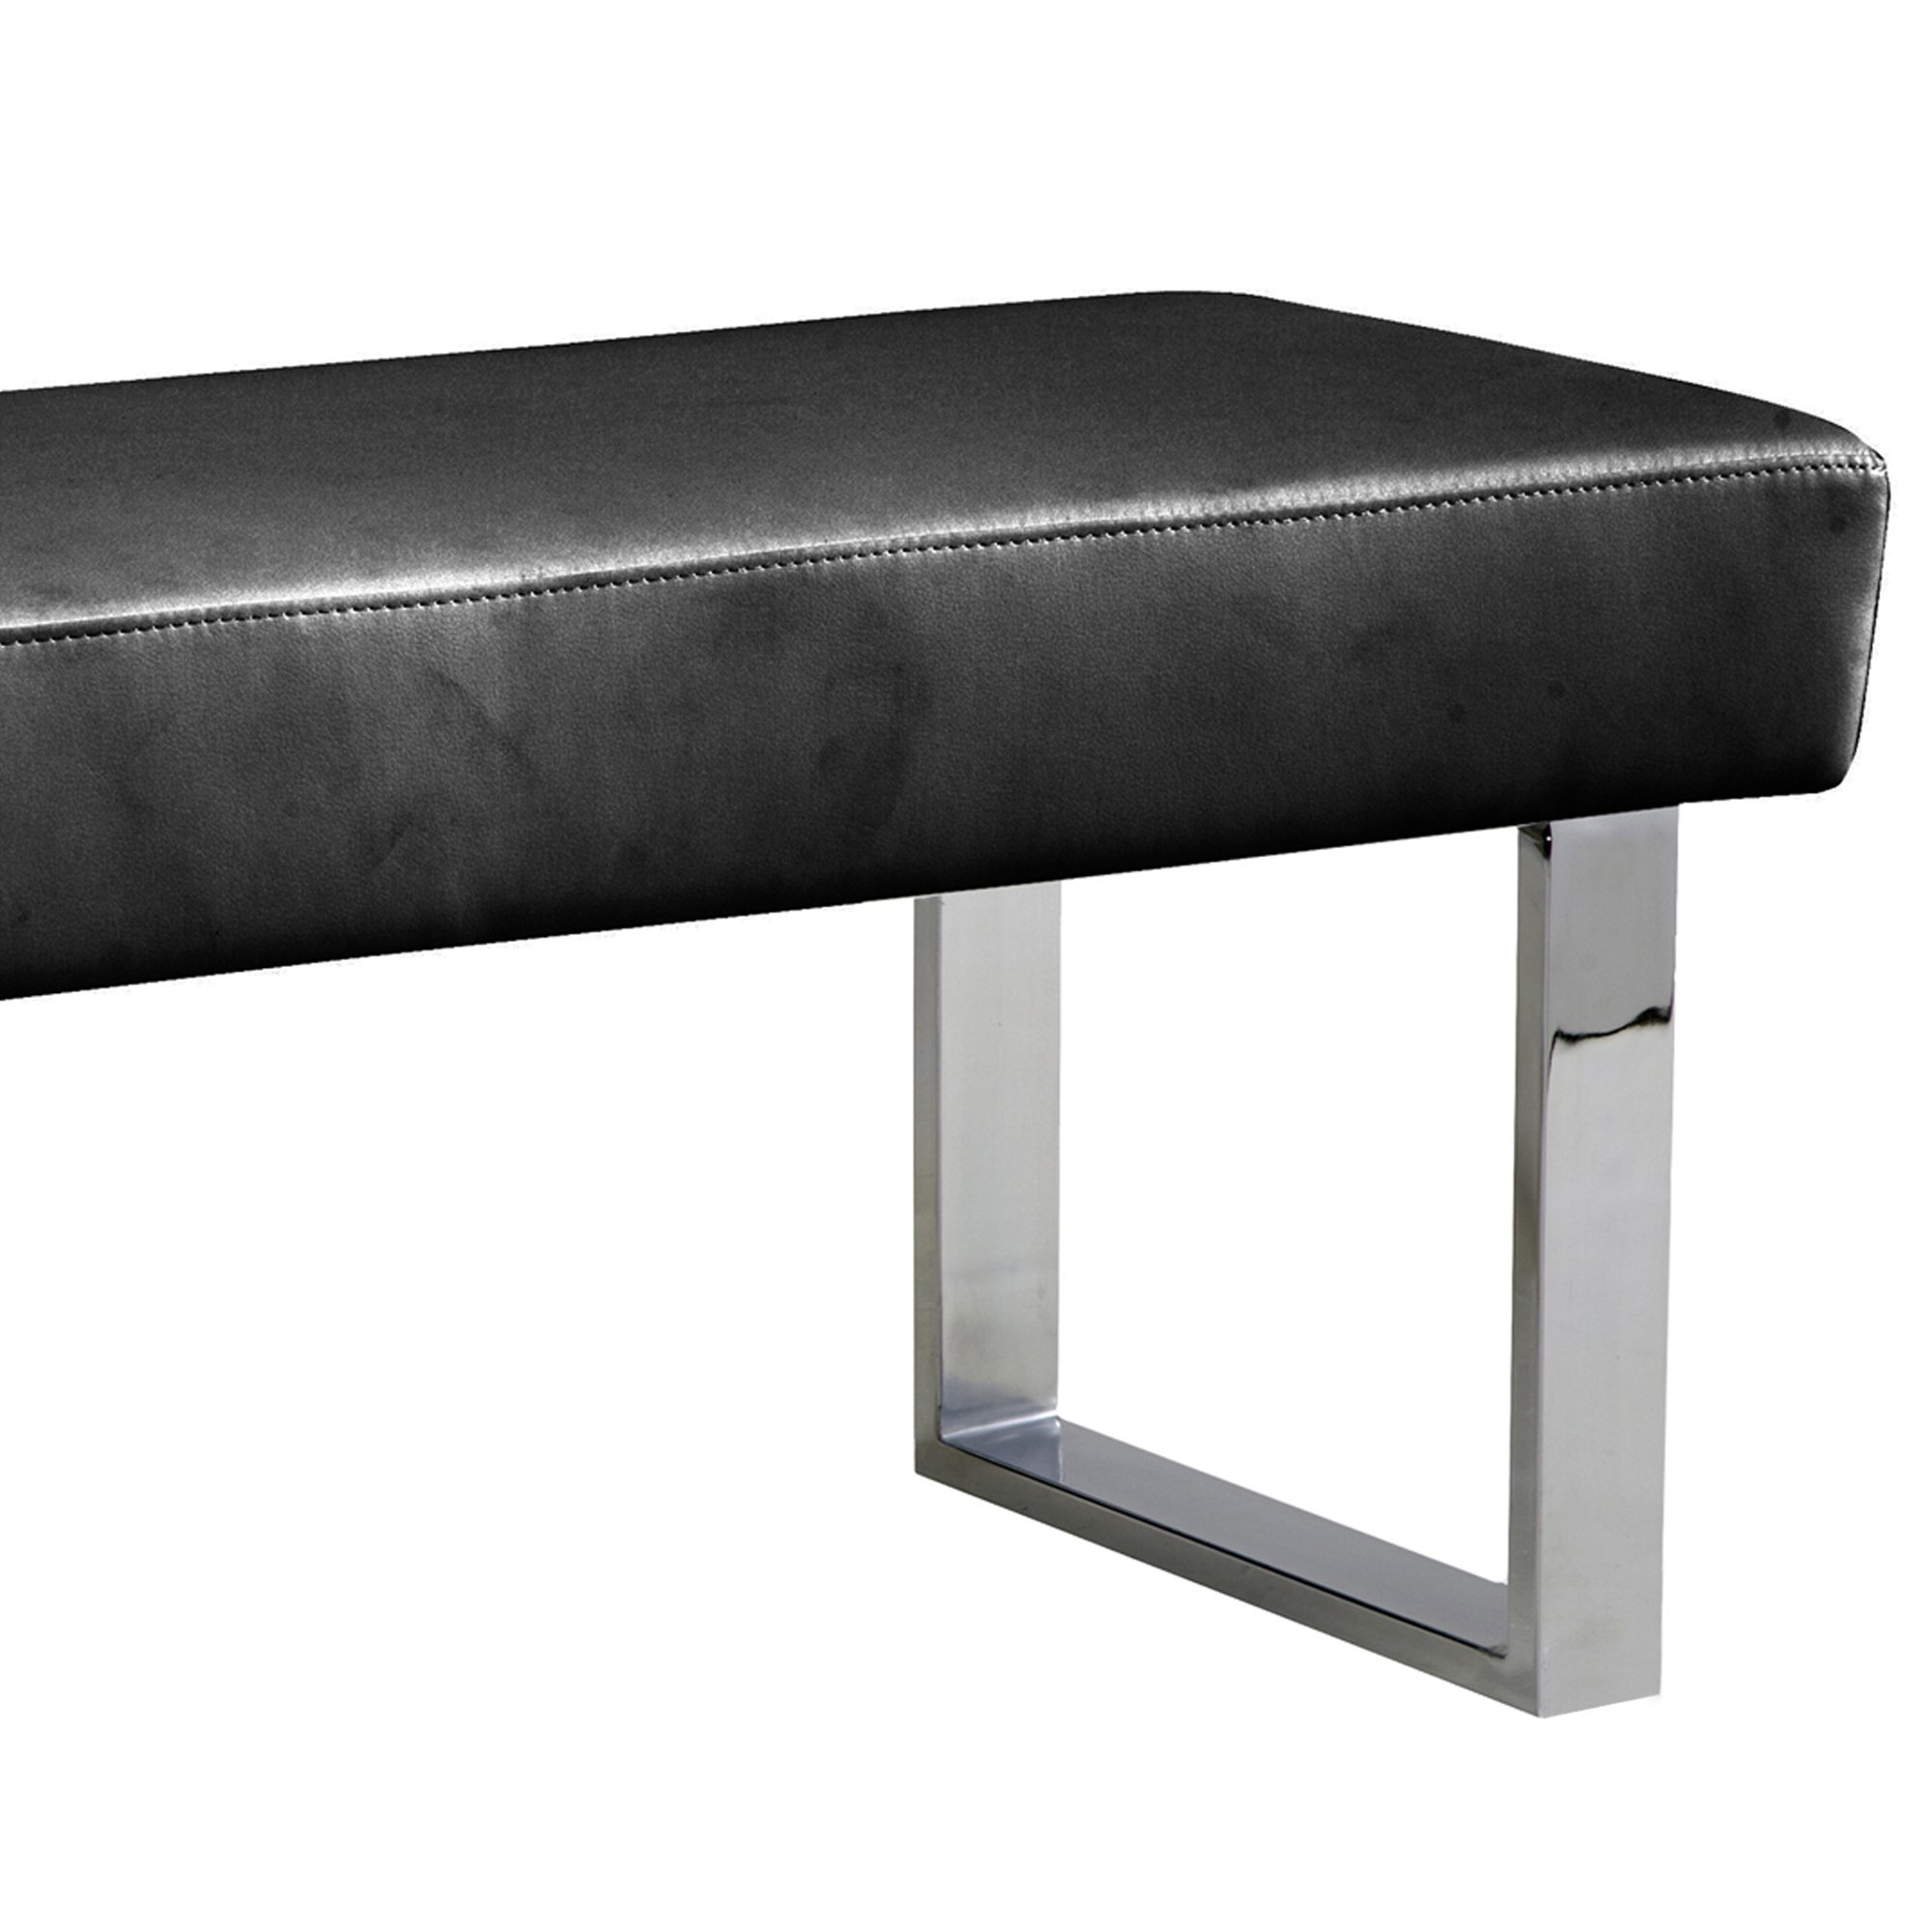 Armen Living LCAMBEBLBCH Amanda Bench in Black and Chrome Finish by Armen Living (Image #3)